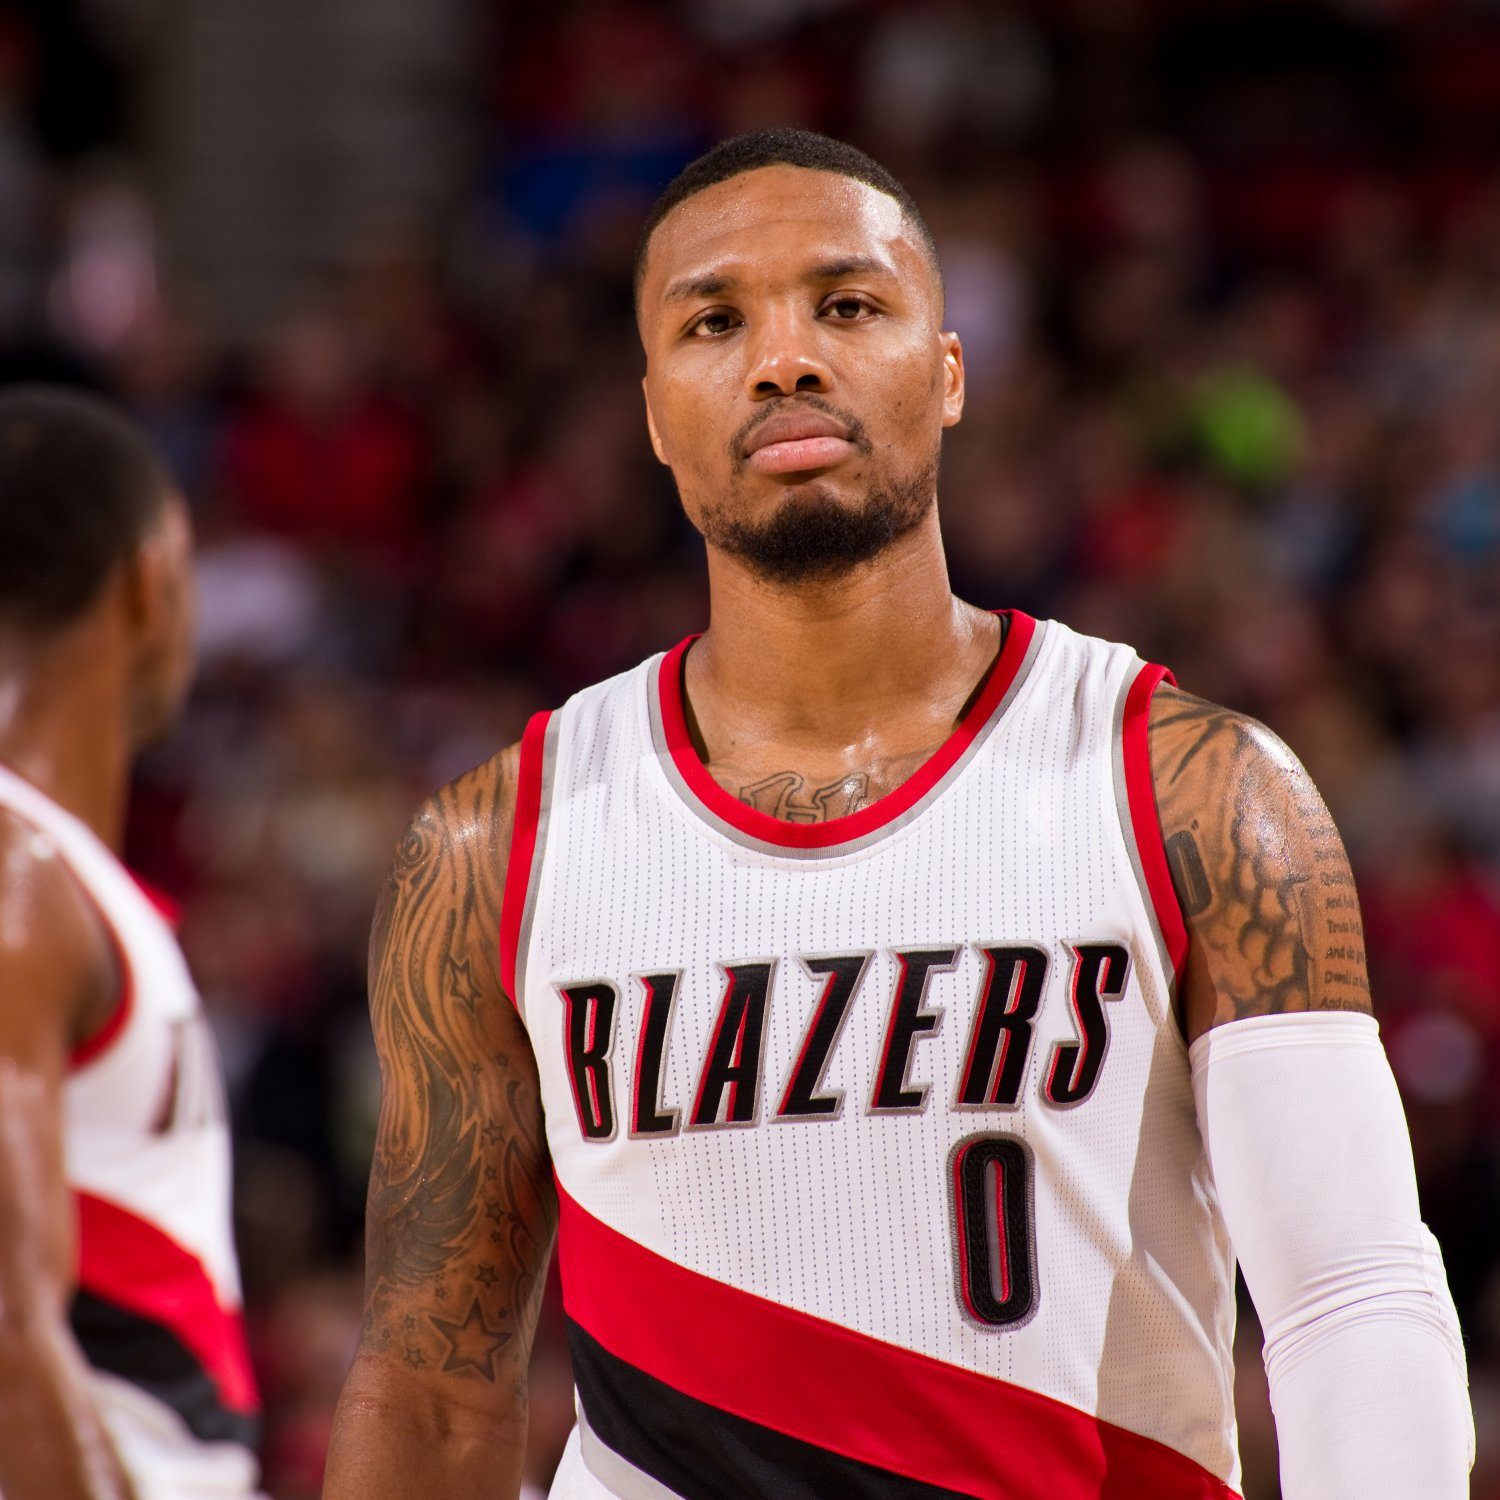 Blazers Oregonlive: Damian Lillard Comments On Goal Of Winning 2016-17 NBA MVP